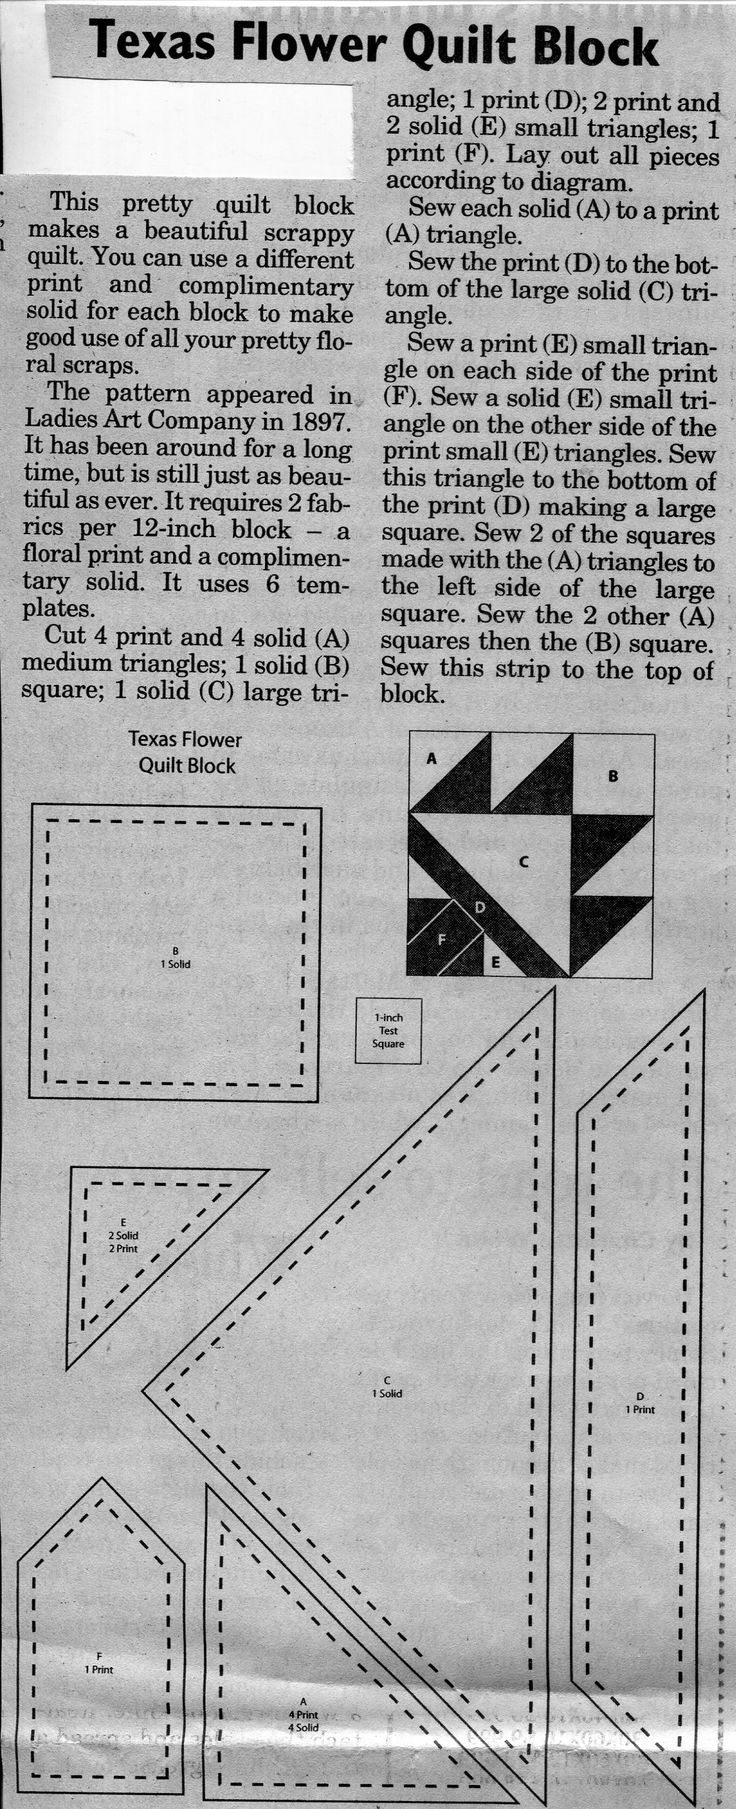 211 best newspaper PATTERNS images on Pinterest | Quilting patterns ...